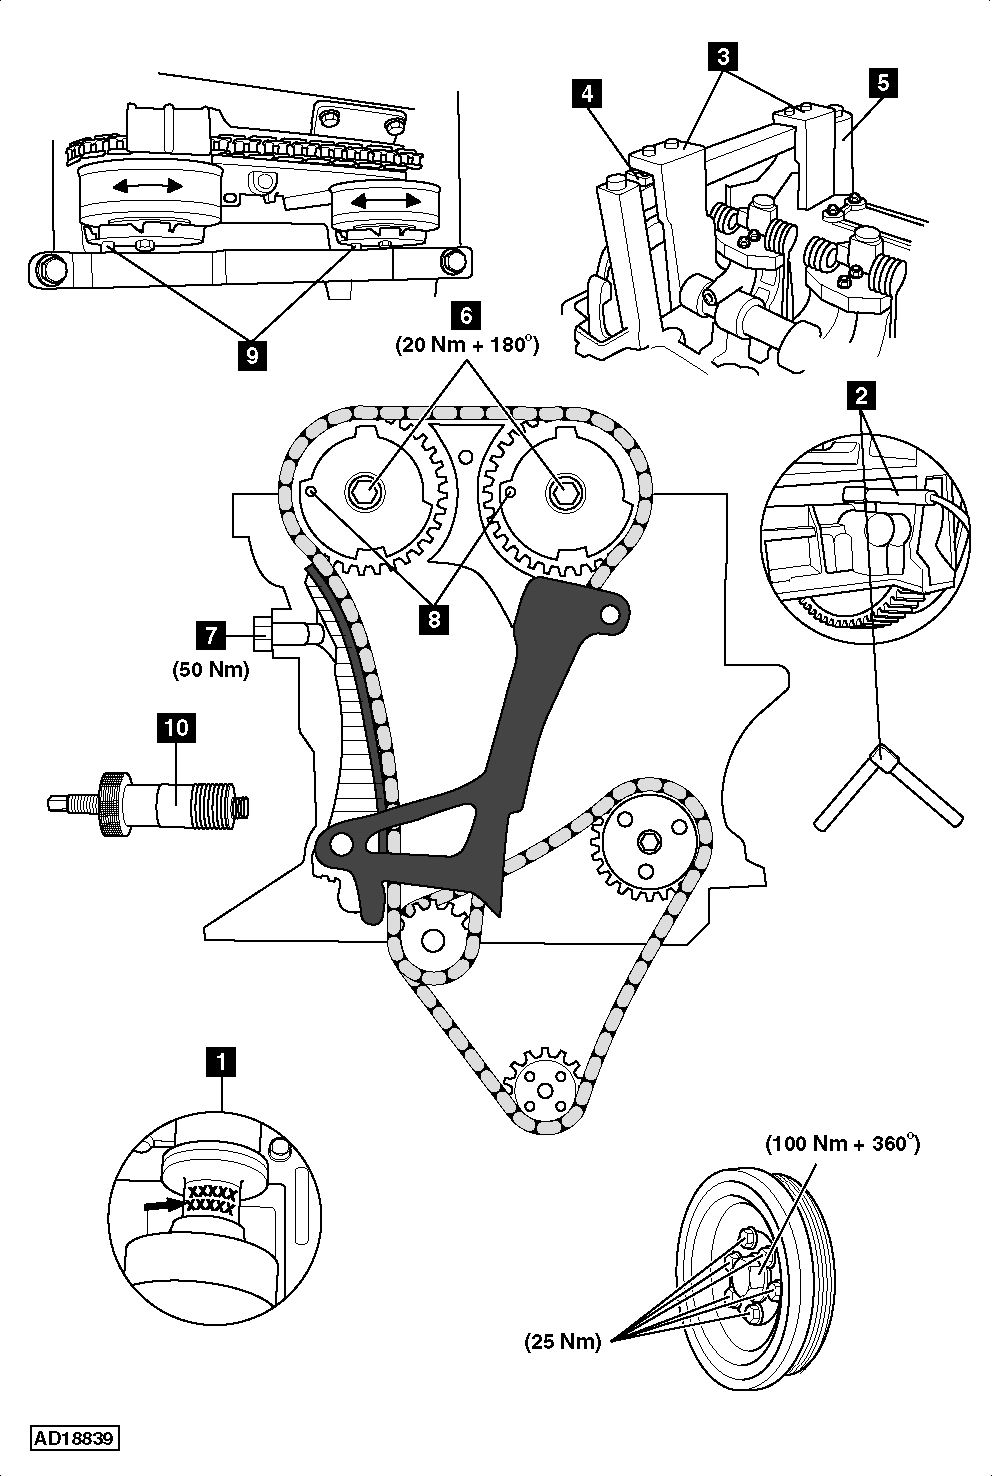 How-to-Replace-timing-chain-on-BMW-325i-E90-91-92-2005-2007